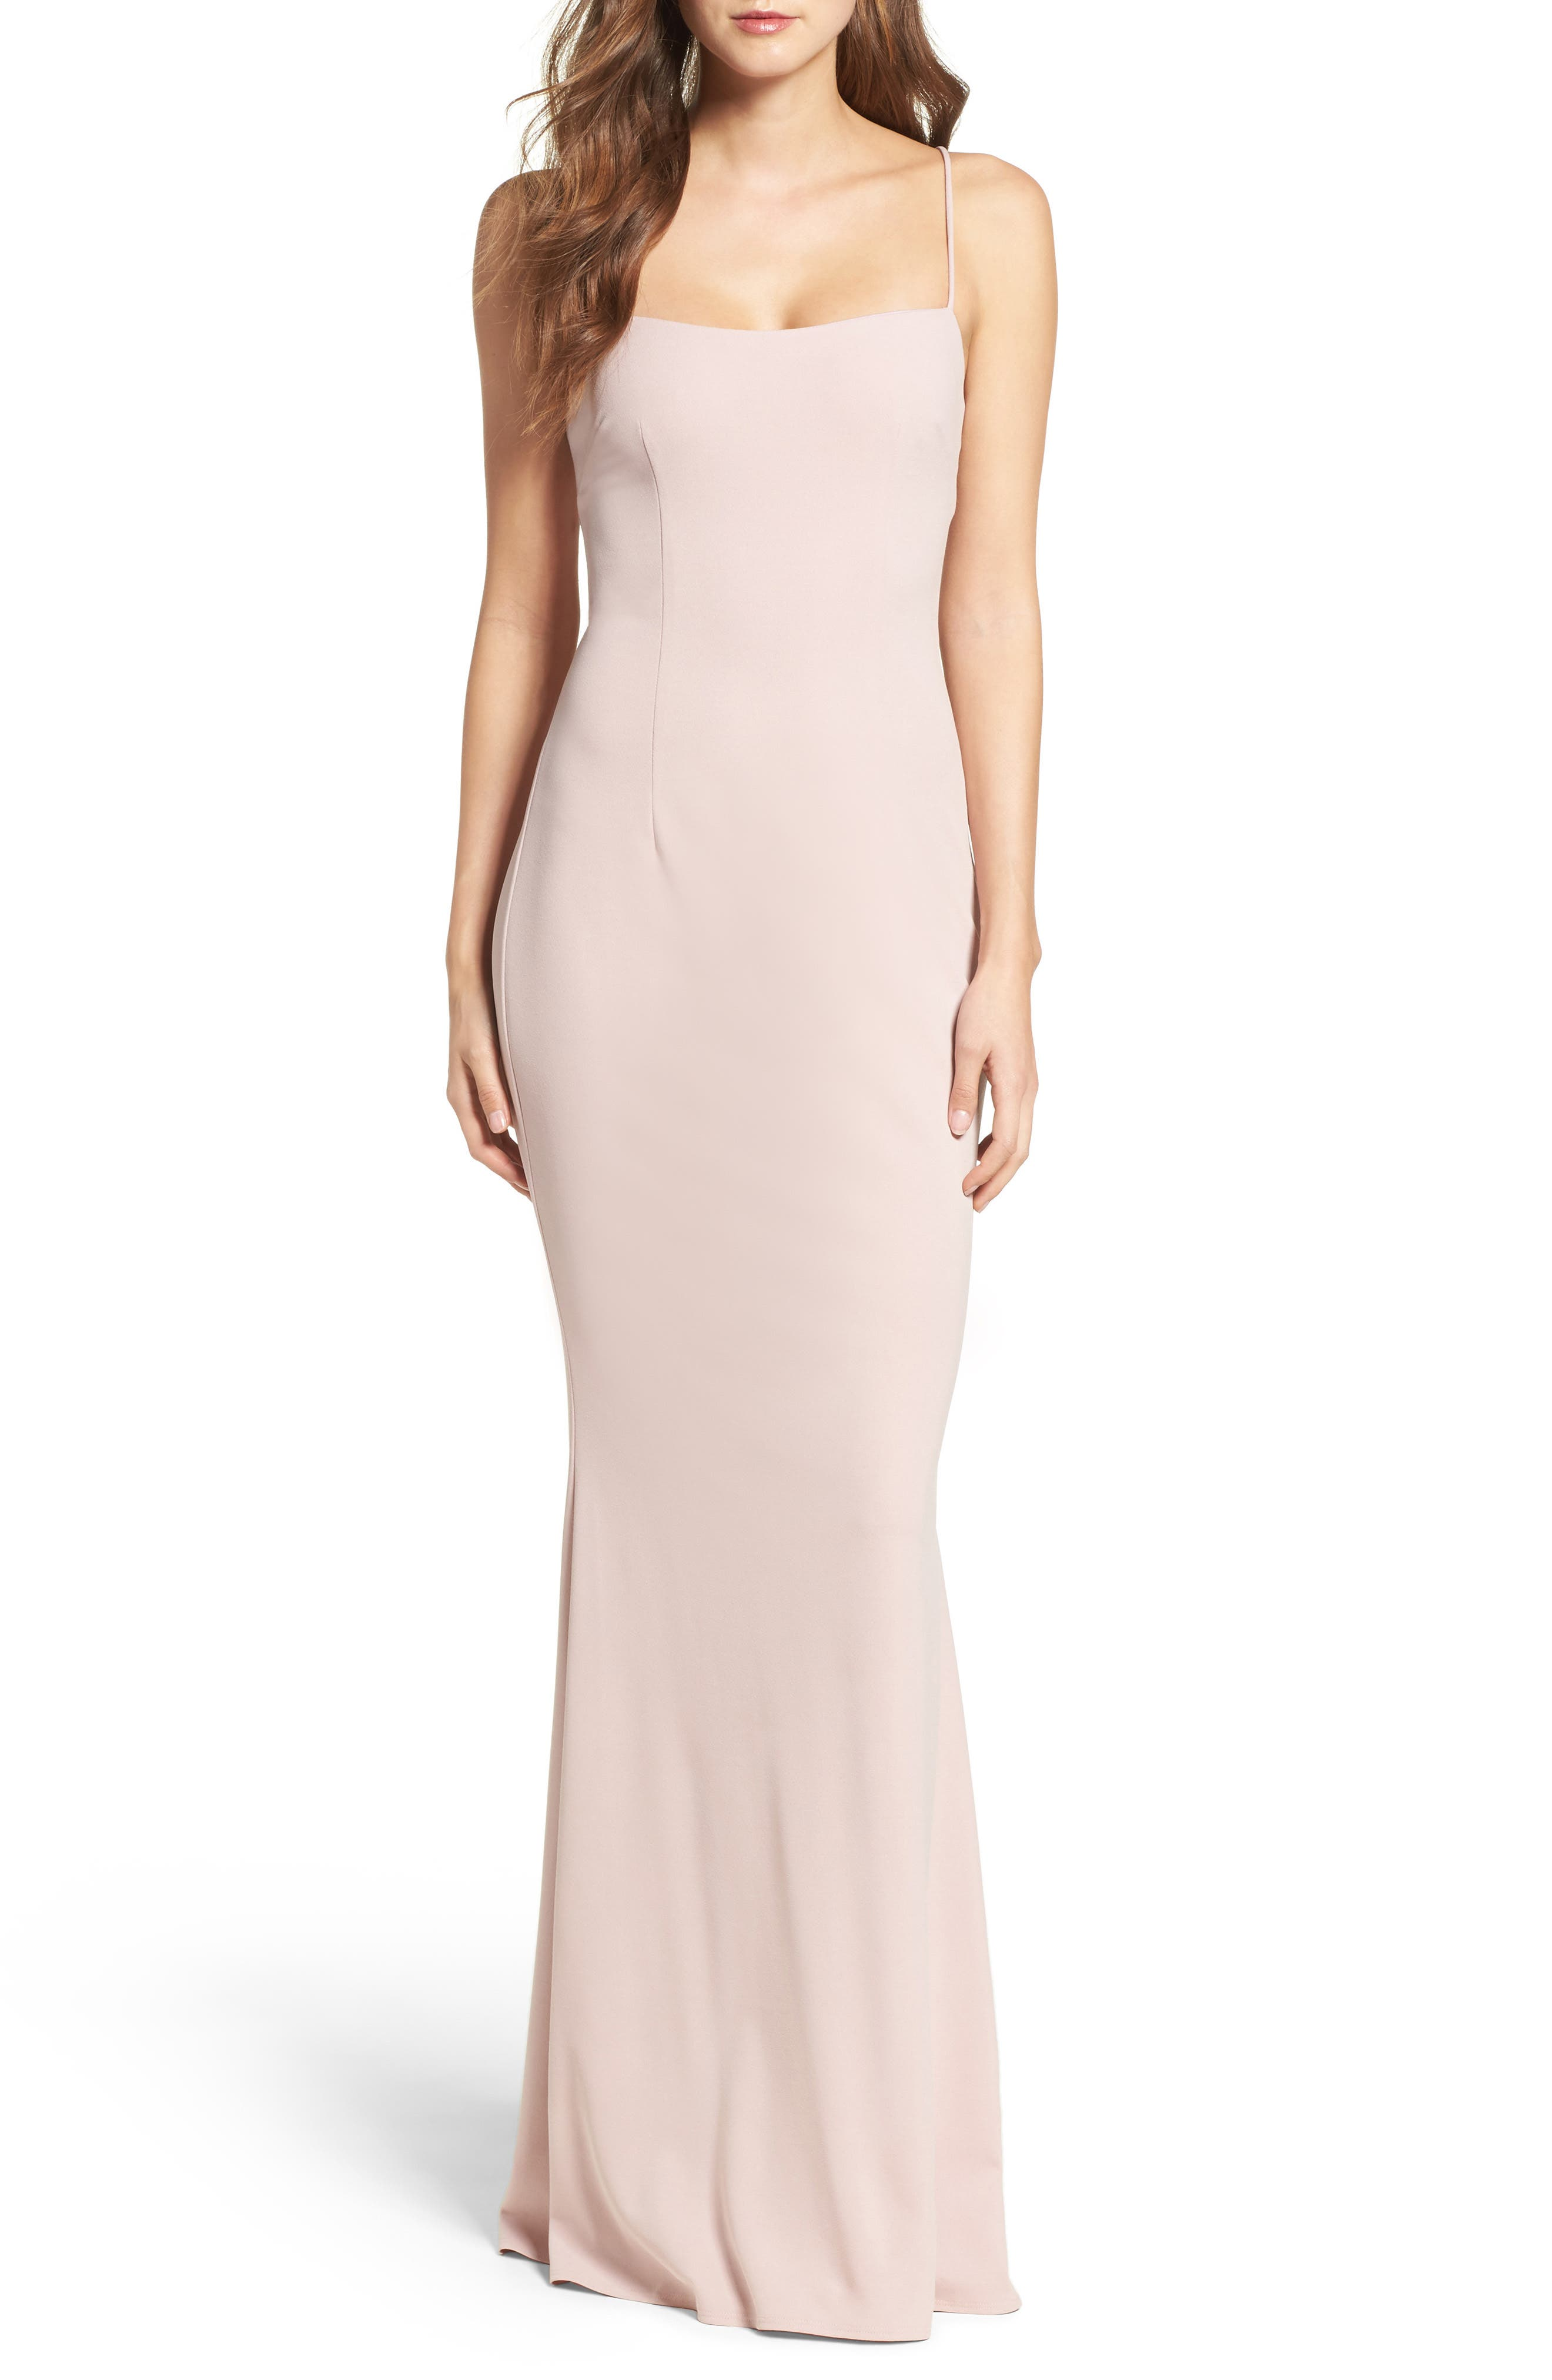 Jean Stretch Crepe Gown,                         Main,                         color,